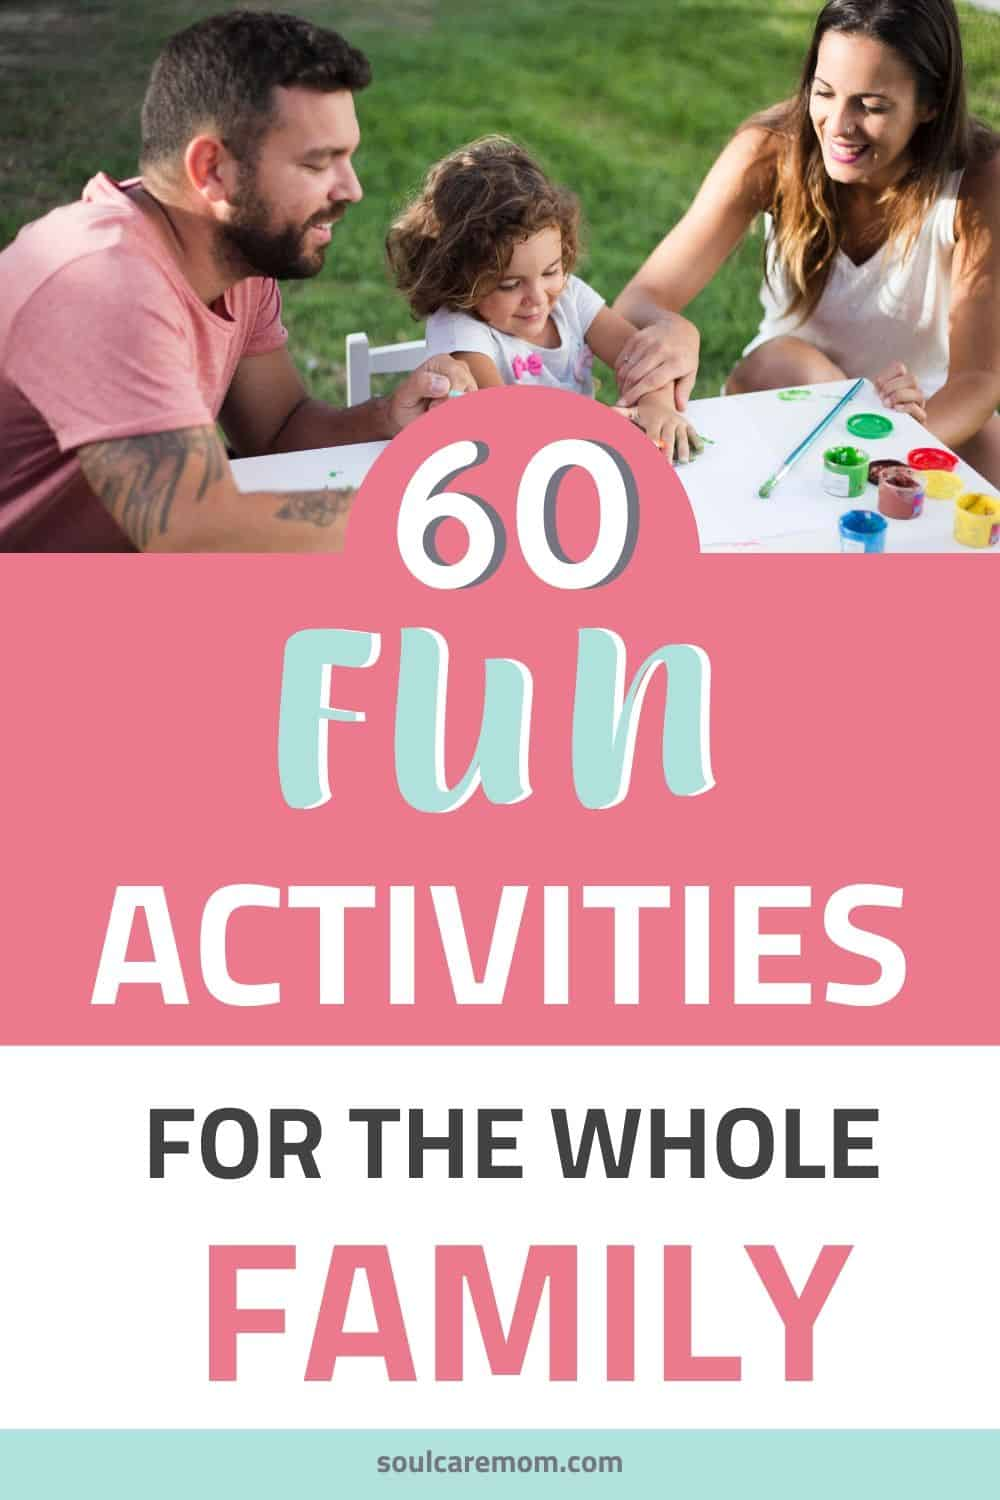 Fun Family Activities - Soul Care Mom - Pinterest